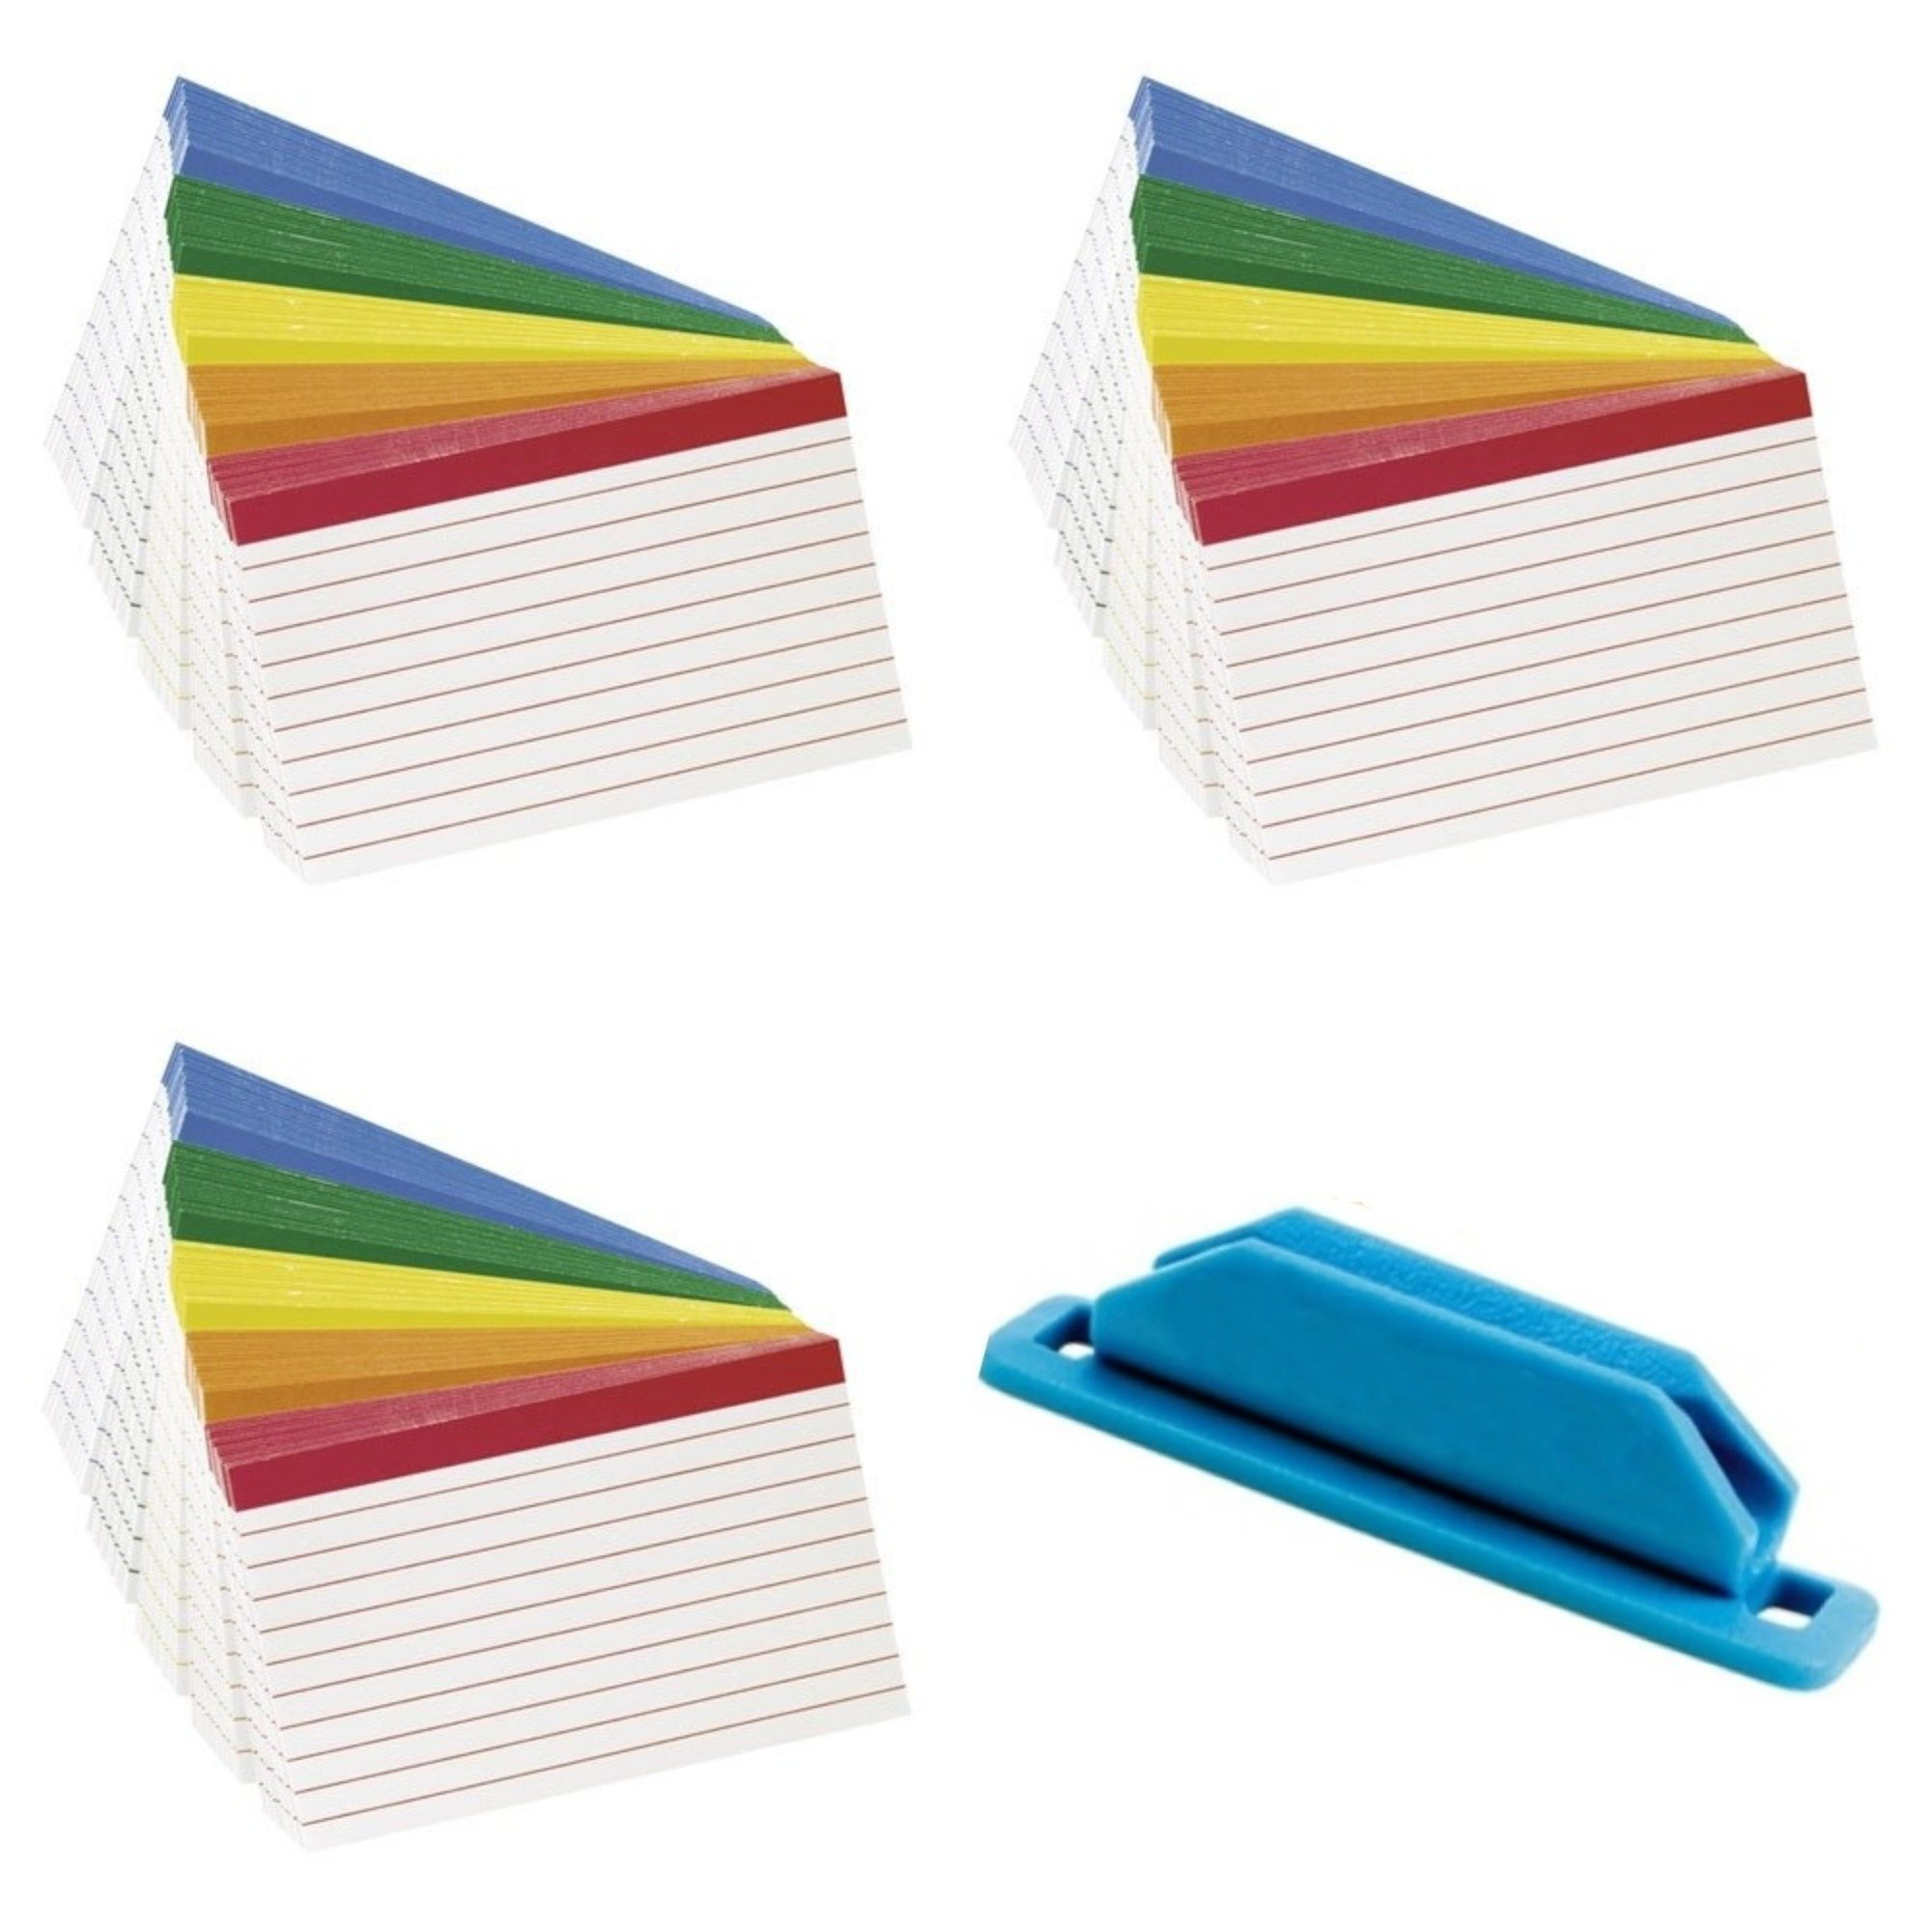 Esselte Corporation Oxford Color Coded Index Cards, 4x6 Inches, Pack of 100 (3 Pack) Bundle with Rubber Pen/Pencil Holder